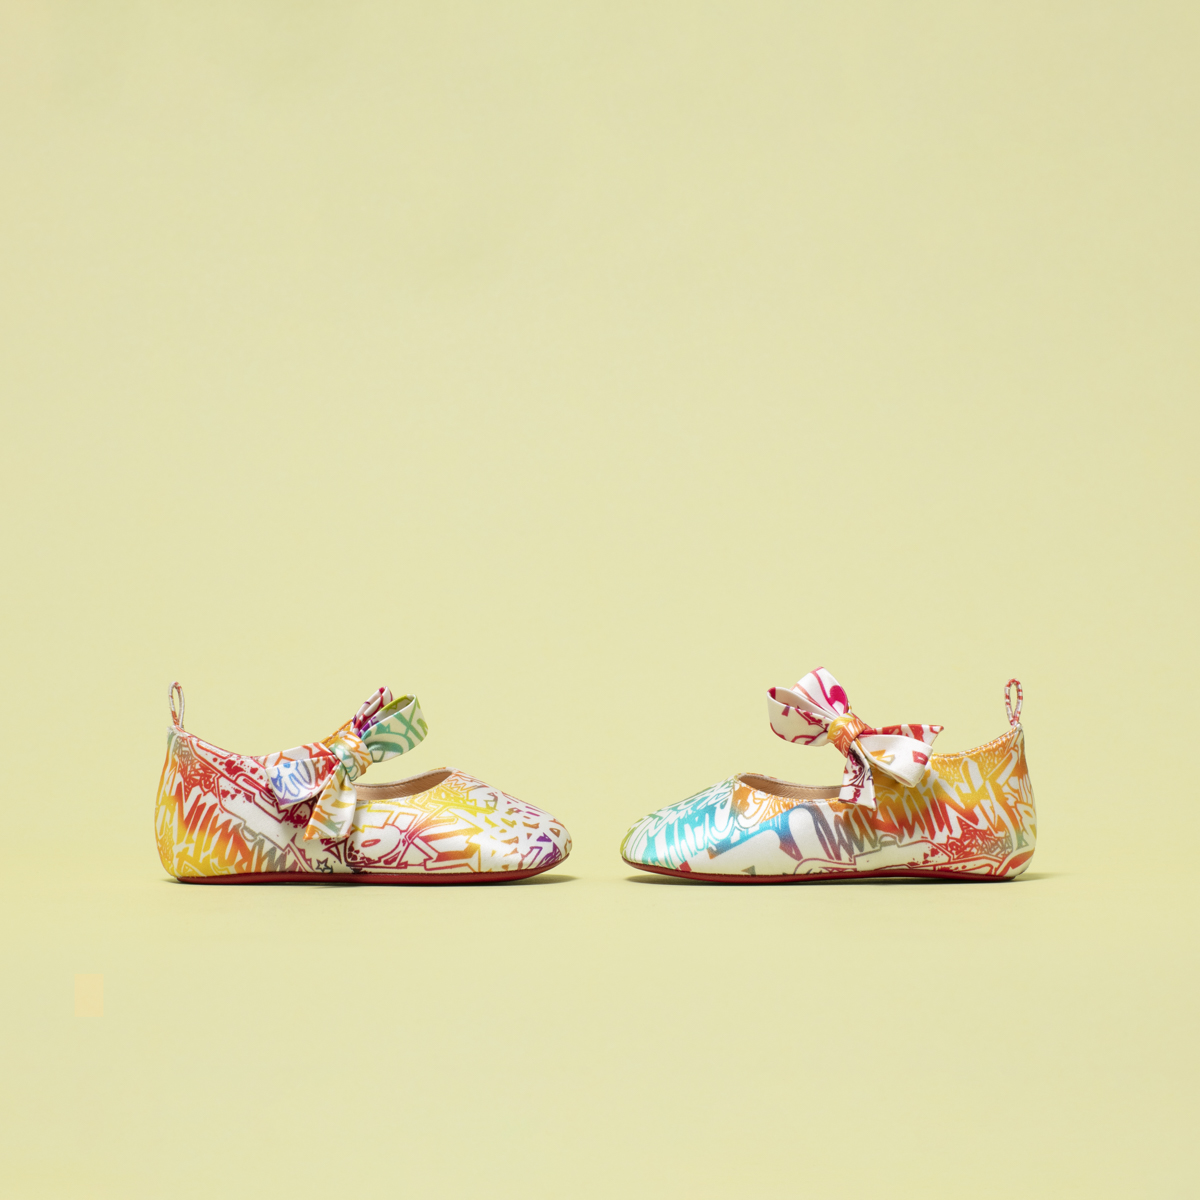 8fc559ade61 News - Christian Louboutin Online - Christian Louboutin Baby shoes ...